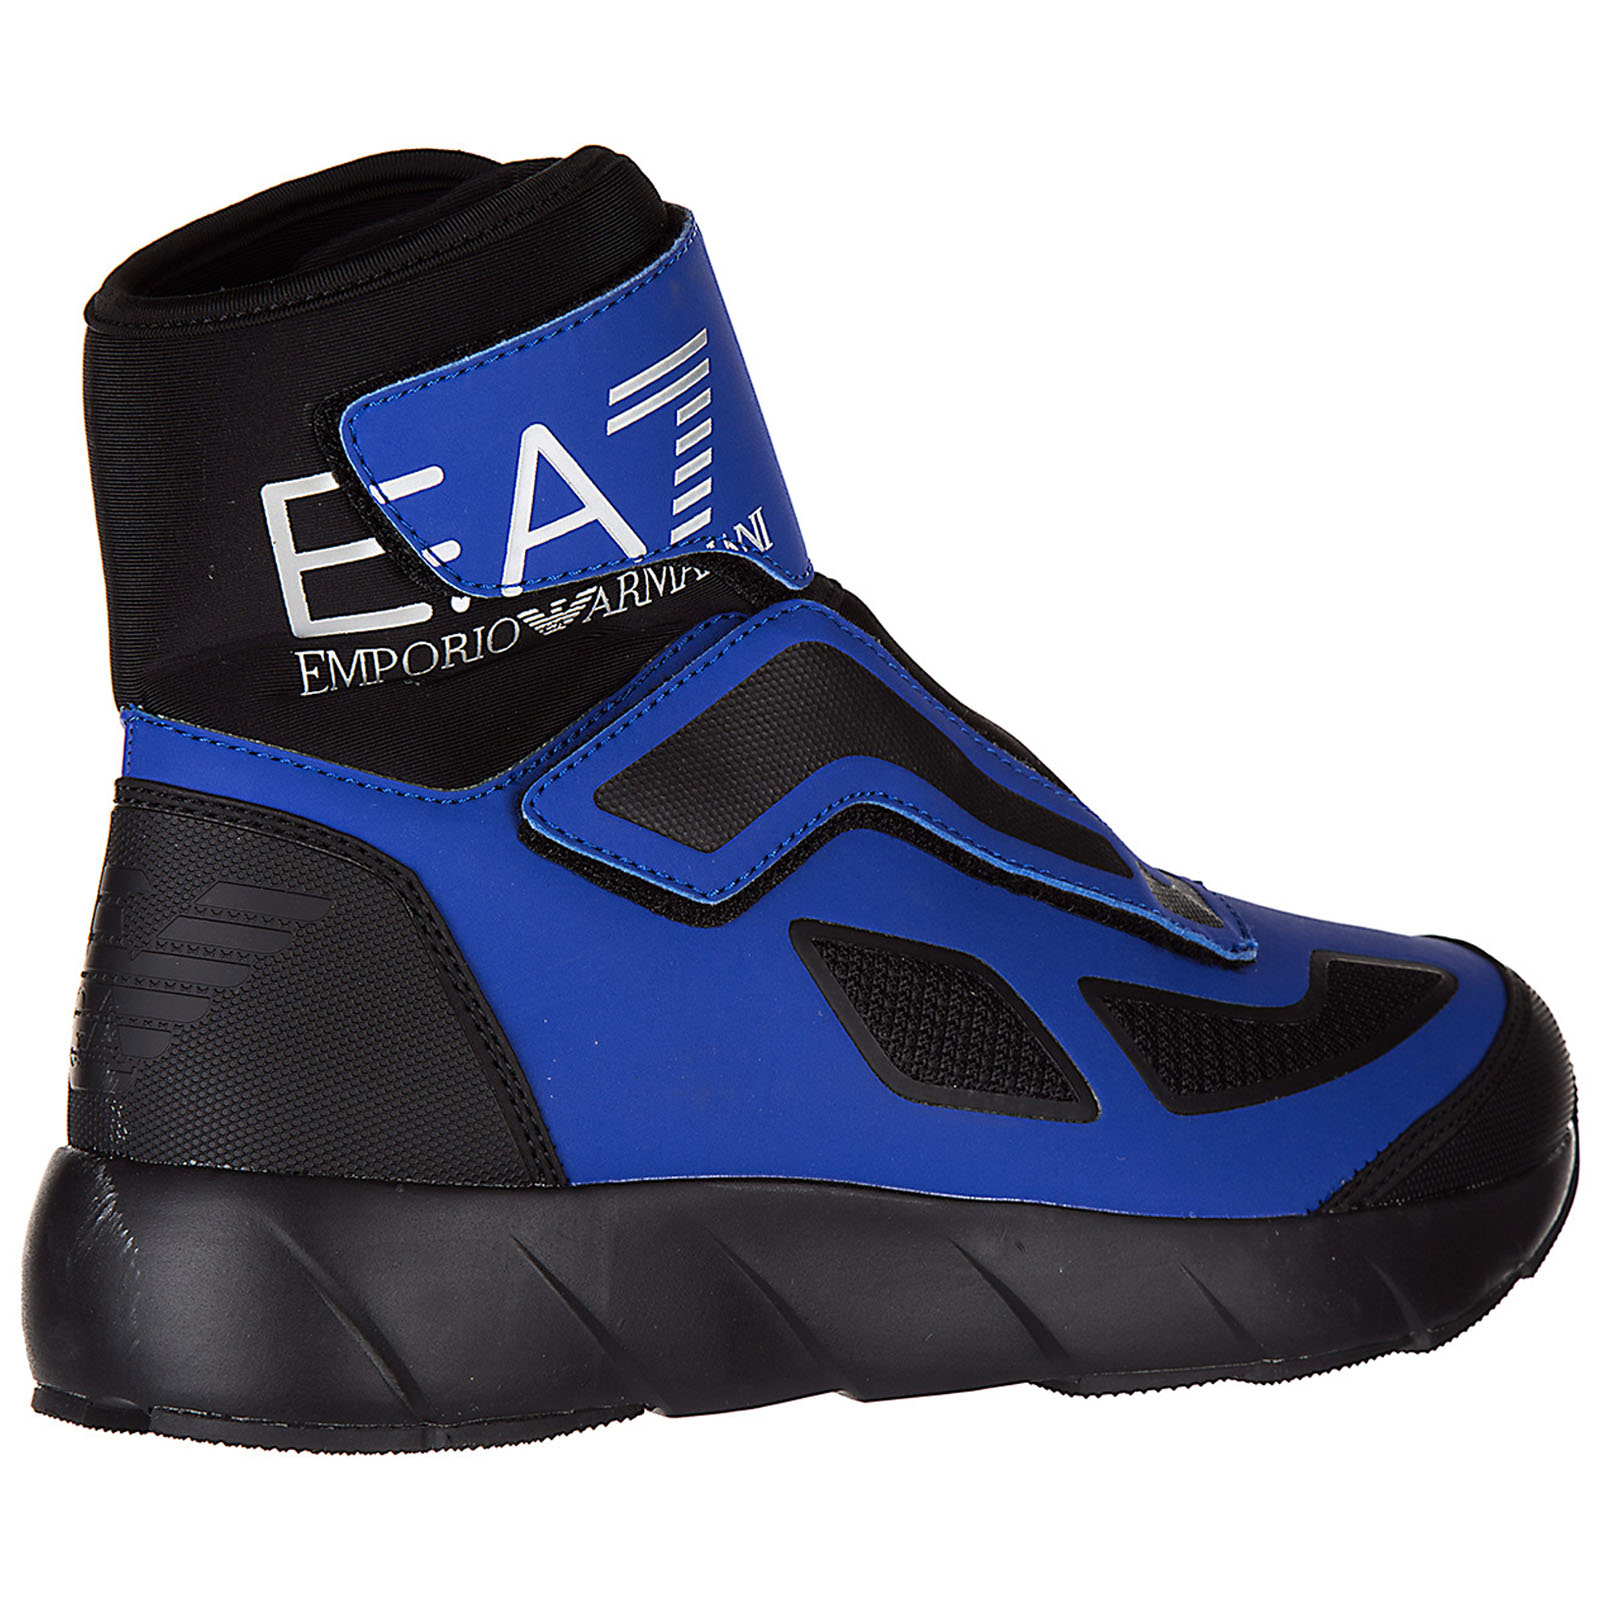 Chaussures baskets sneakers hautes homme space boot